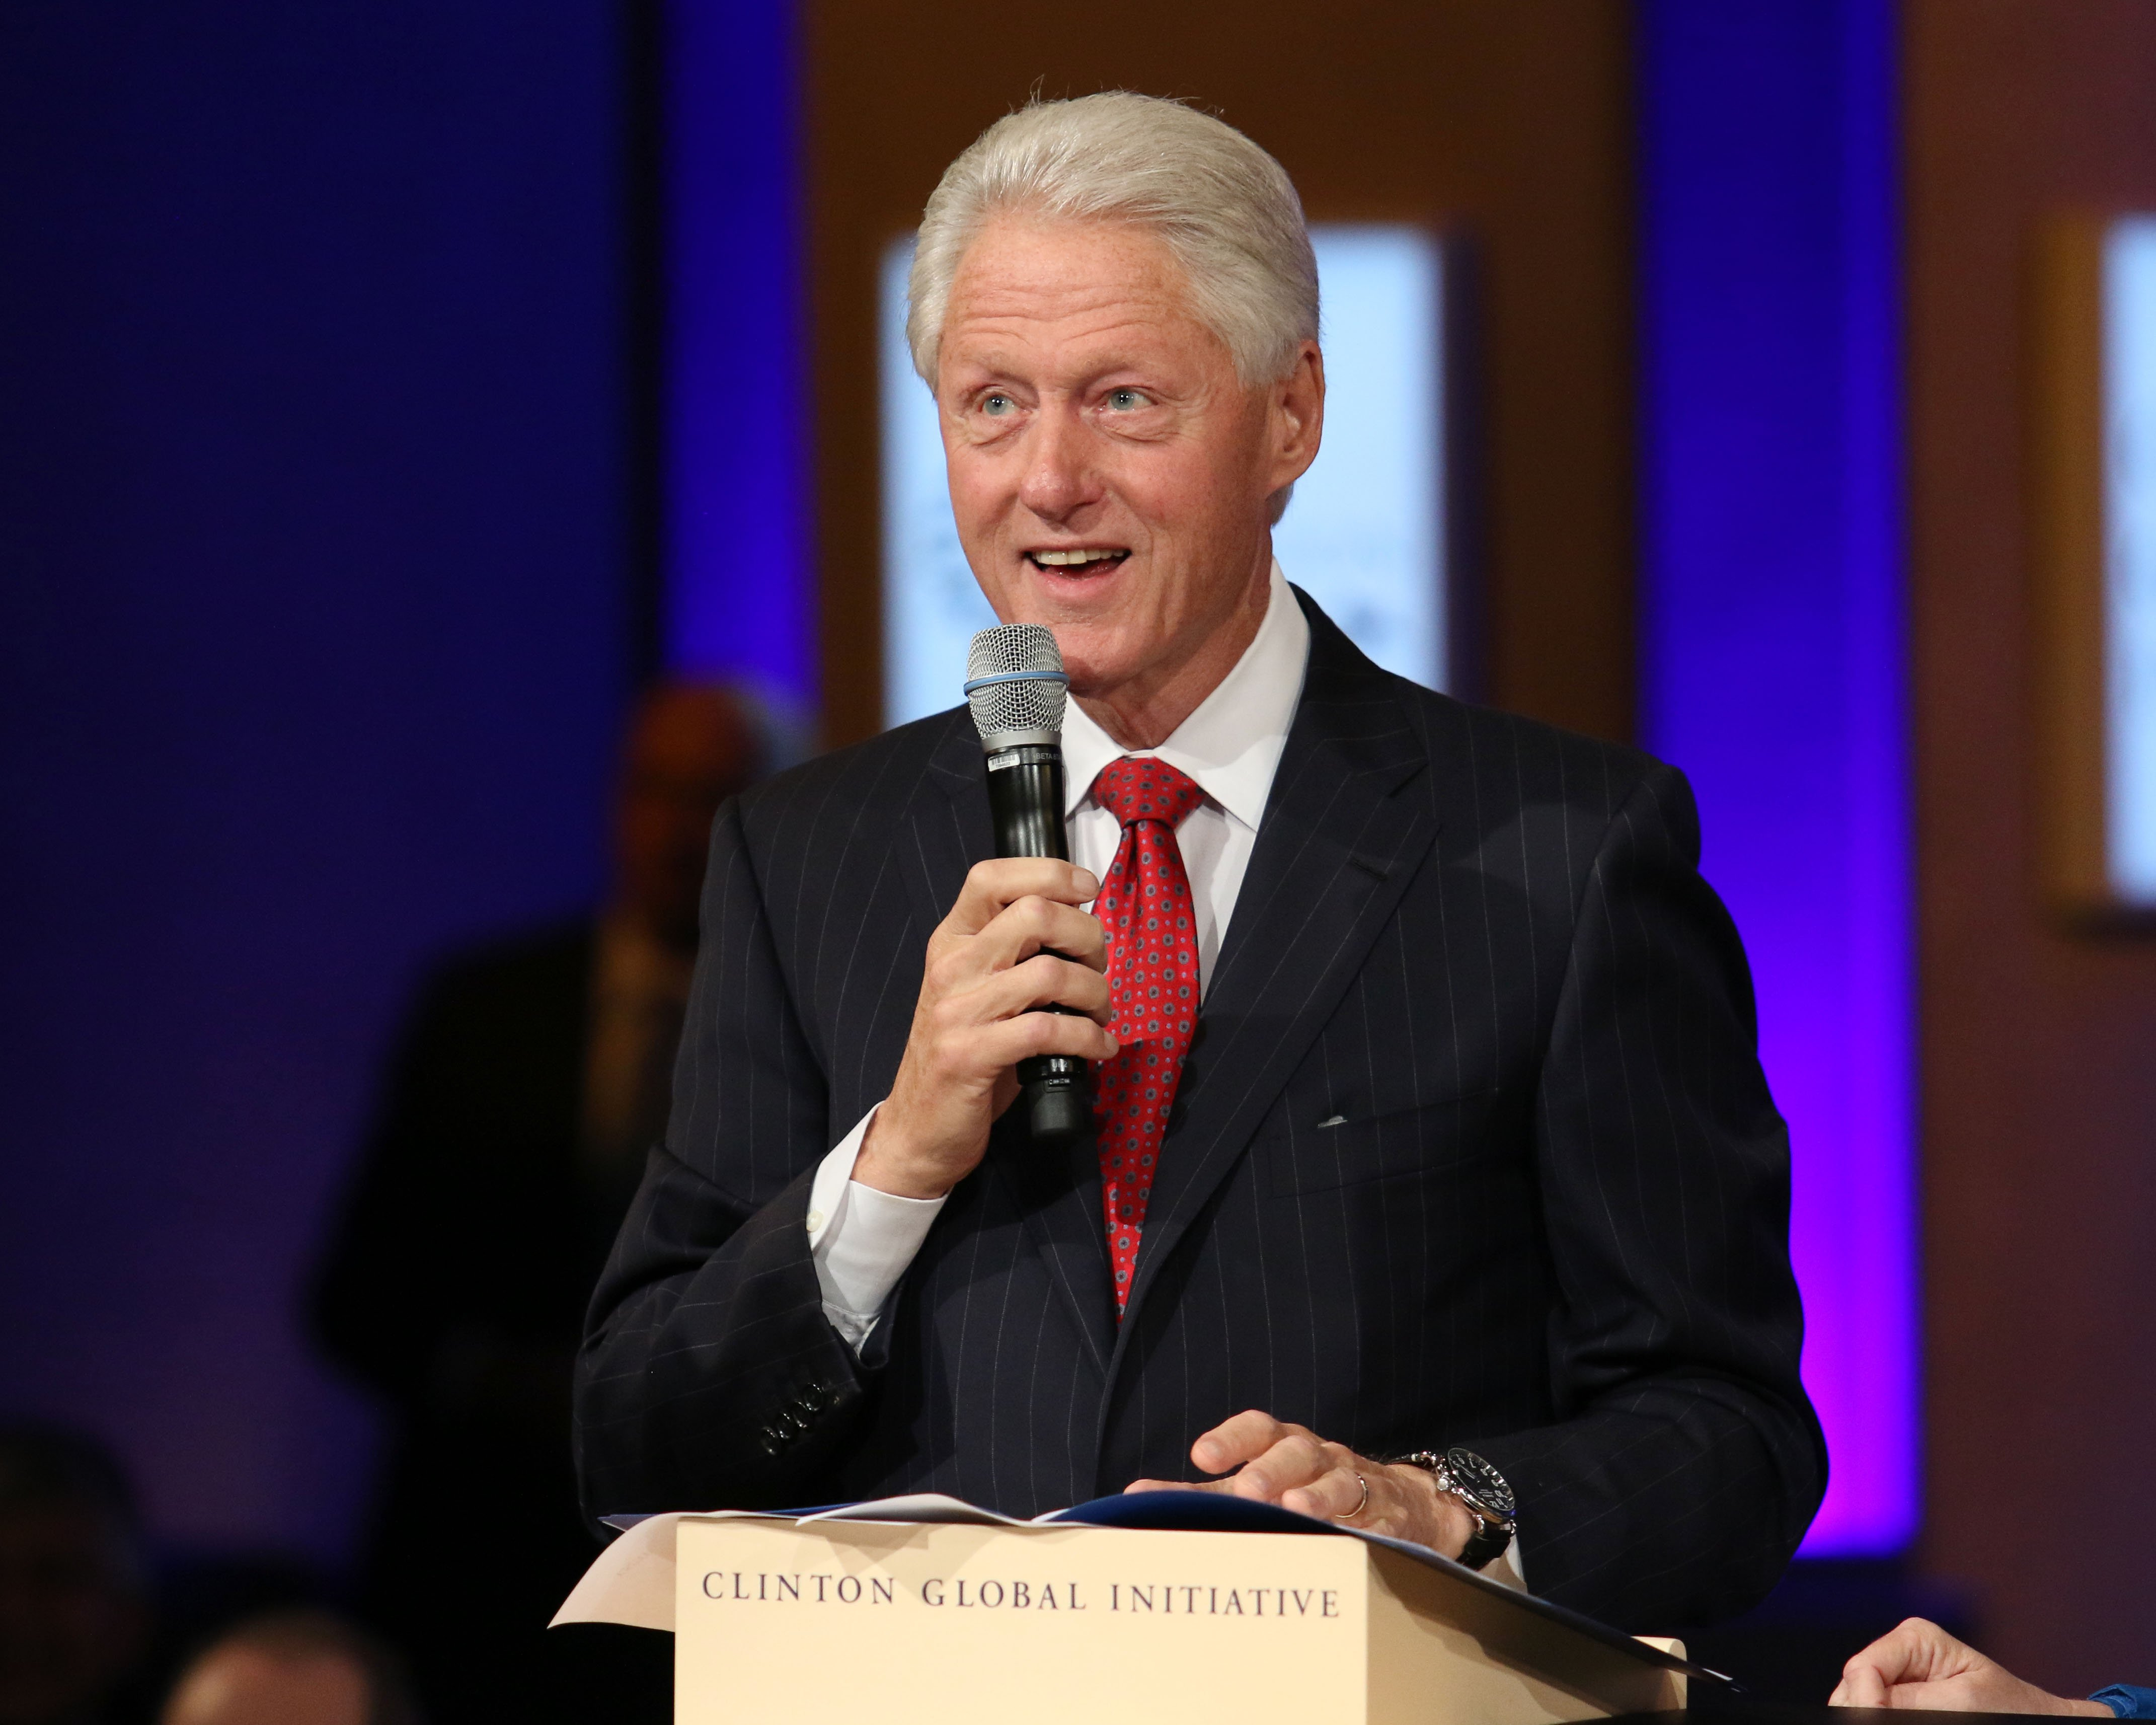 Bill Clinton speaks during the closing plenary session of the 2014 Clinton Global Initiative in New York City on Sept. 24, 2014.